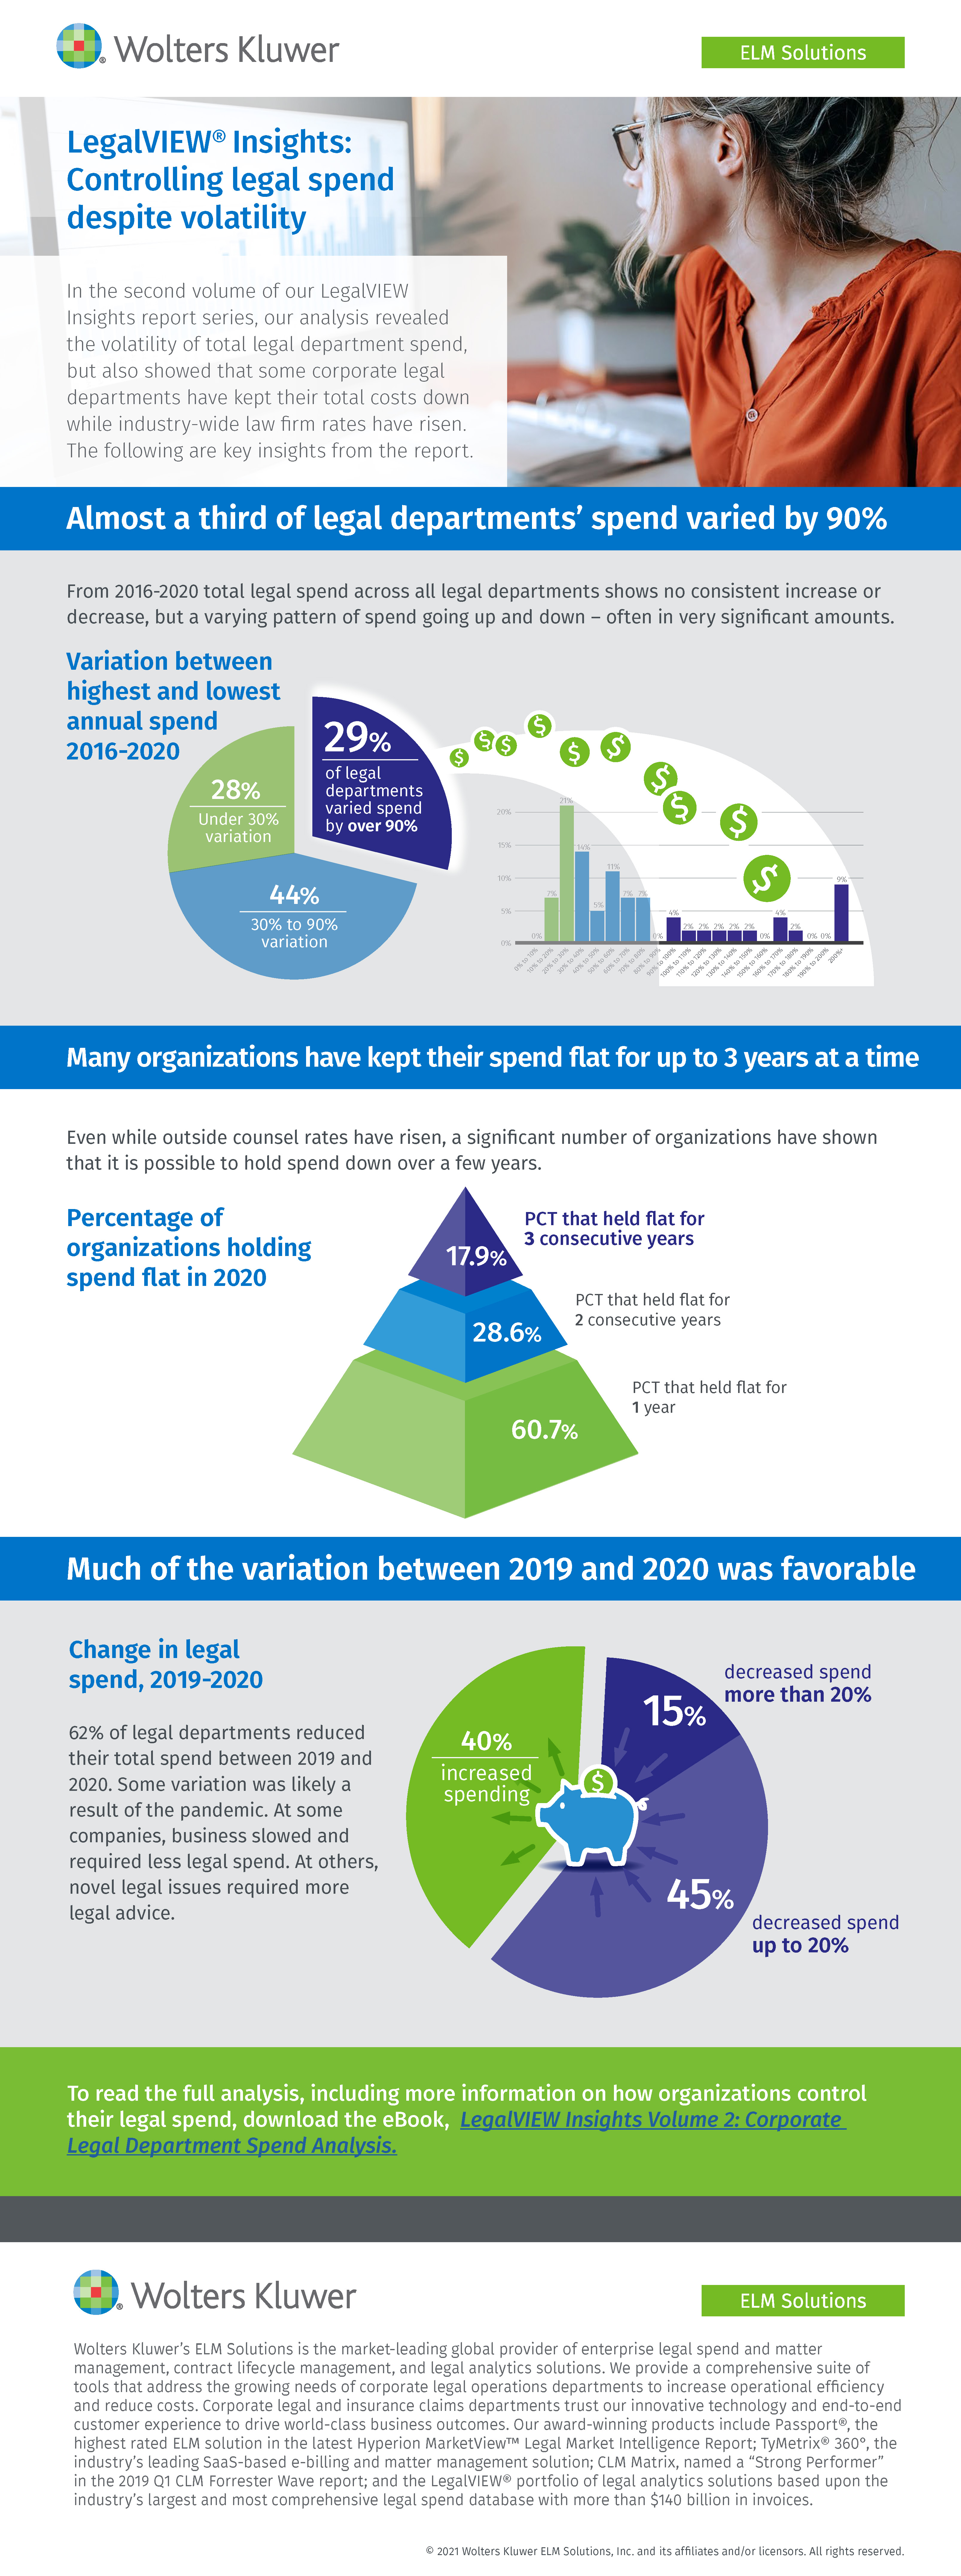 legalview insights vol 2